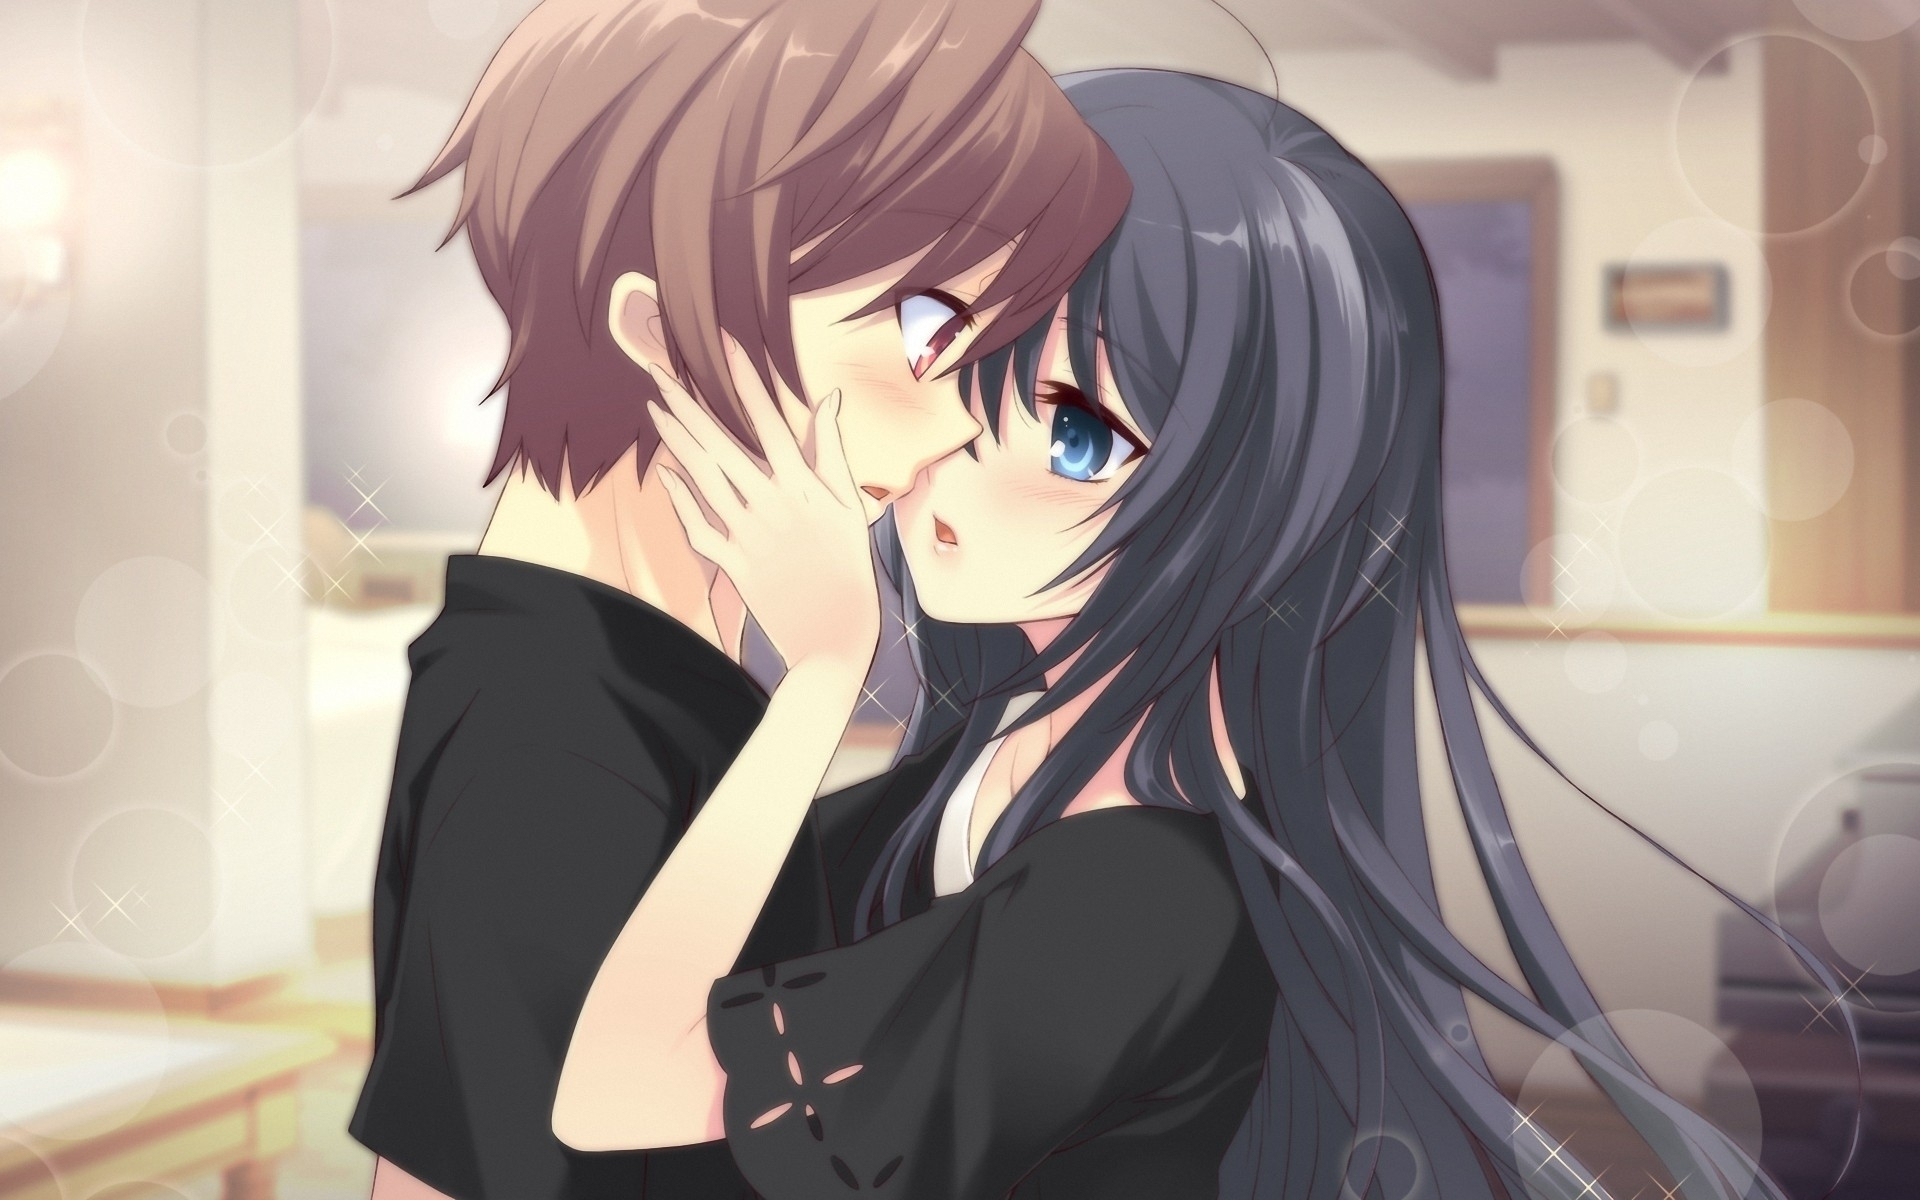 Hd wallpaper kiss gentle confusion anime